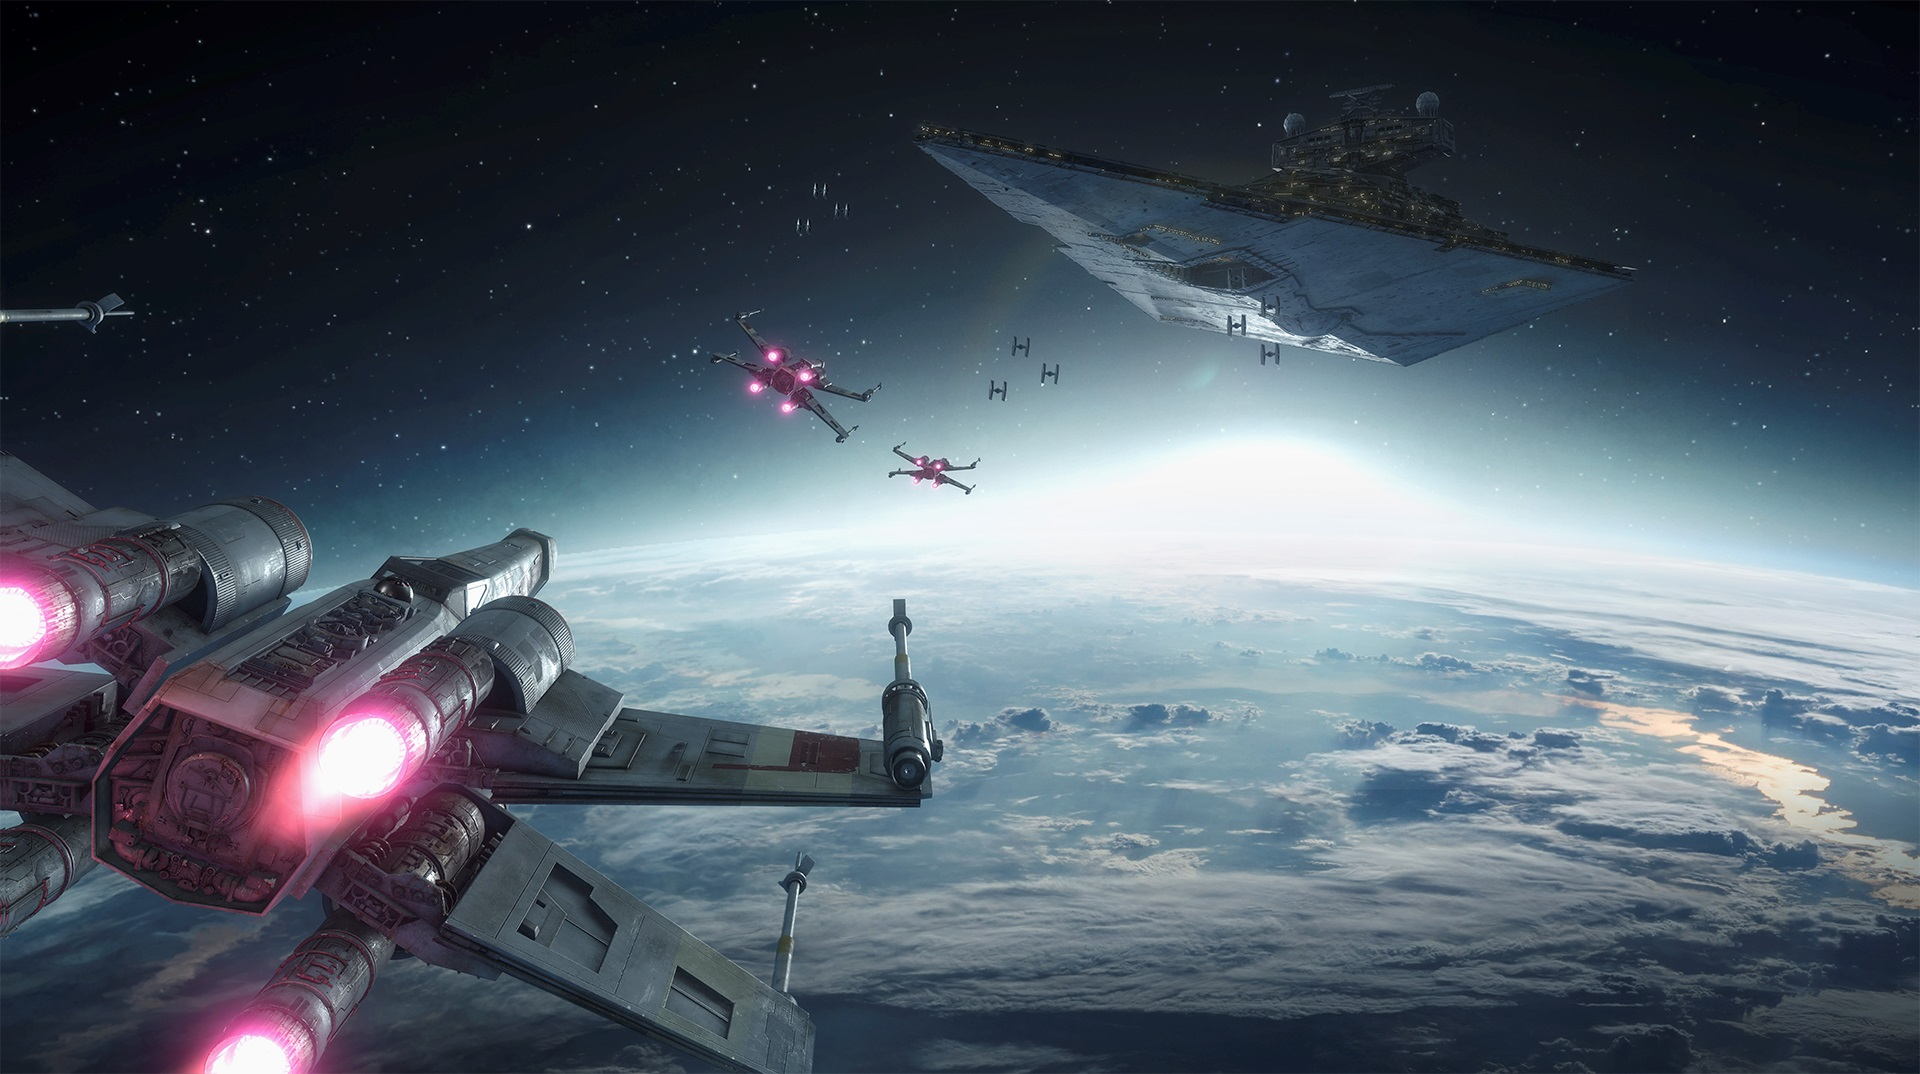 Star-Wars-Battlefront-Rogue-One-X-Wing-V